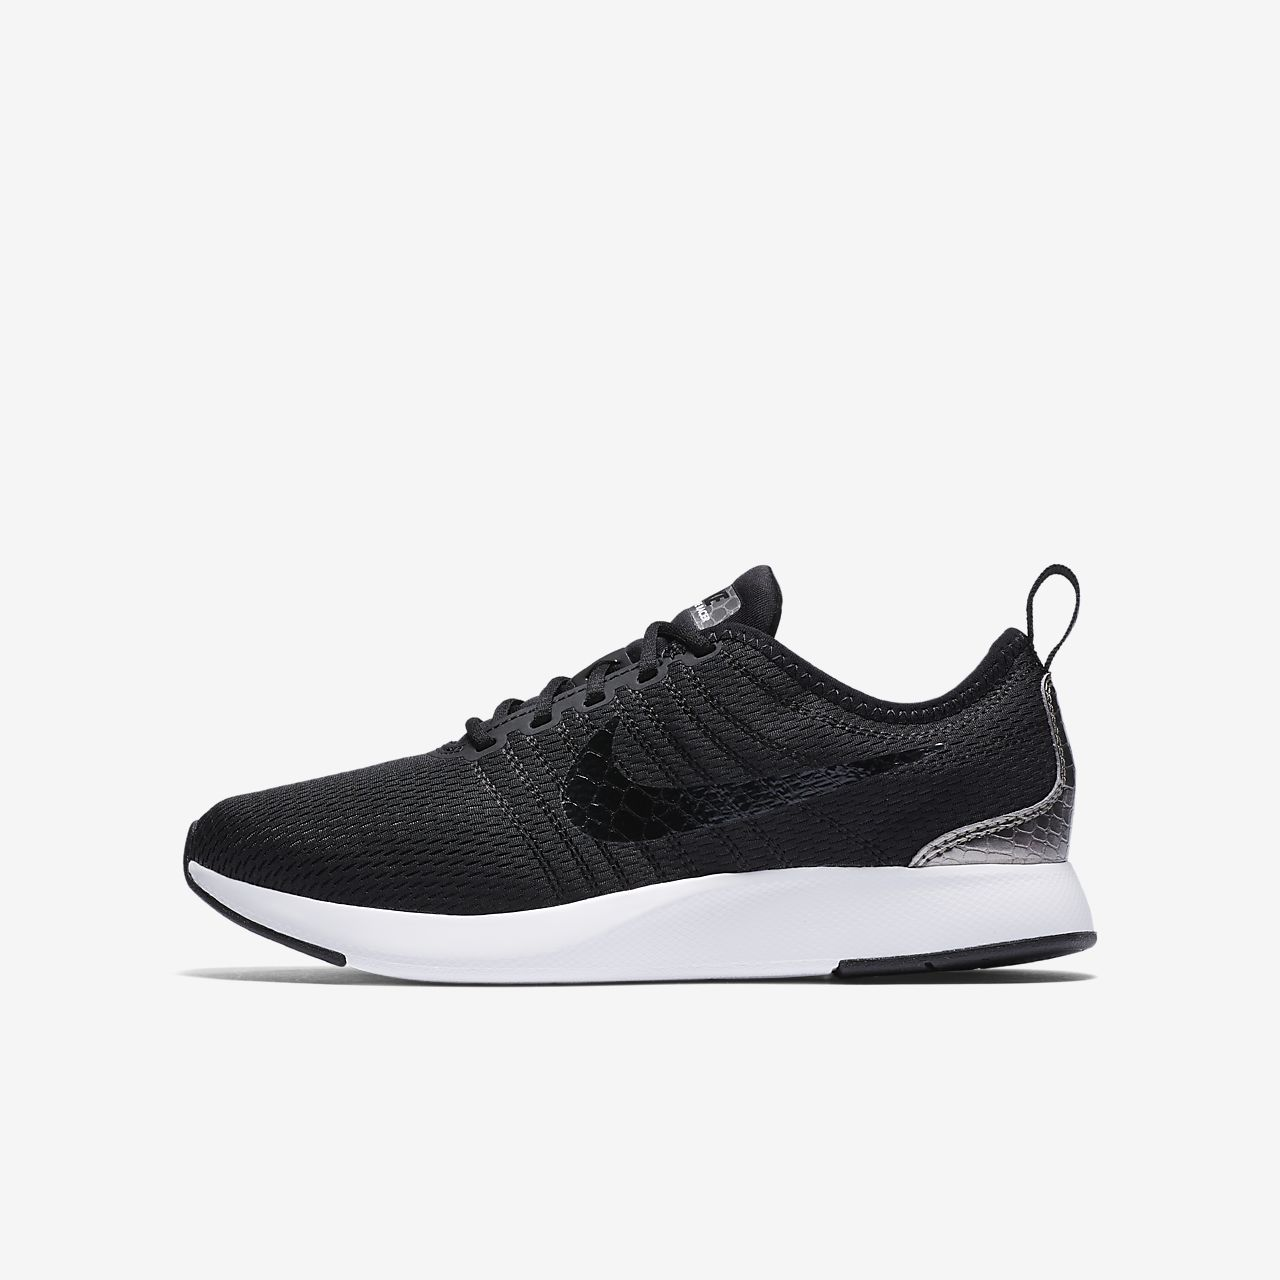 41449d13718 Low Resolution Nike Dualtone Racer Older Kids  Shoe Nike Dualtone Racer  Older Kids  Shoe